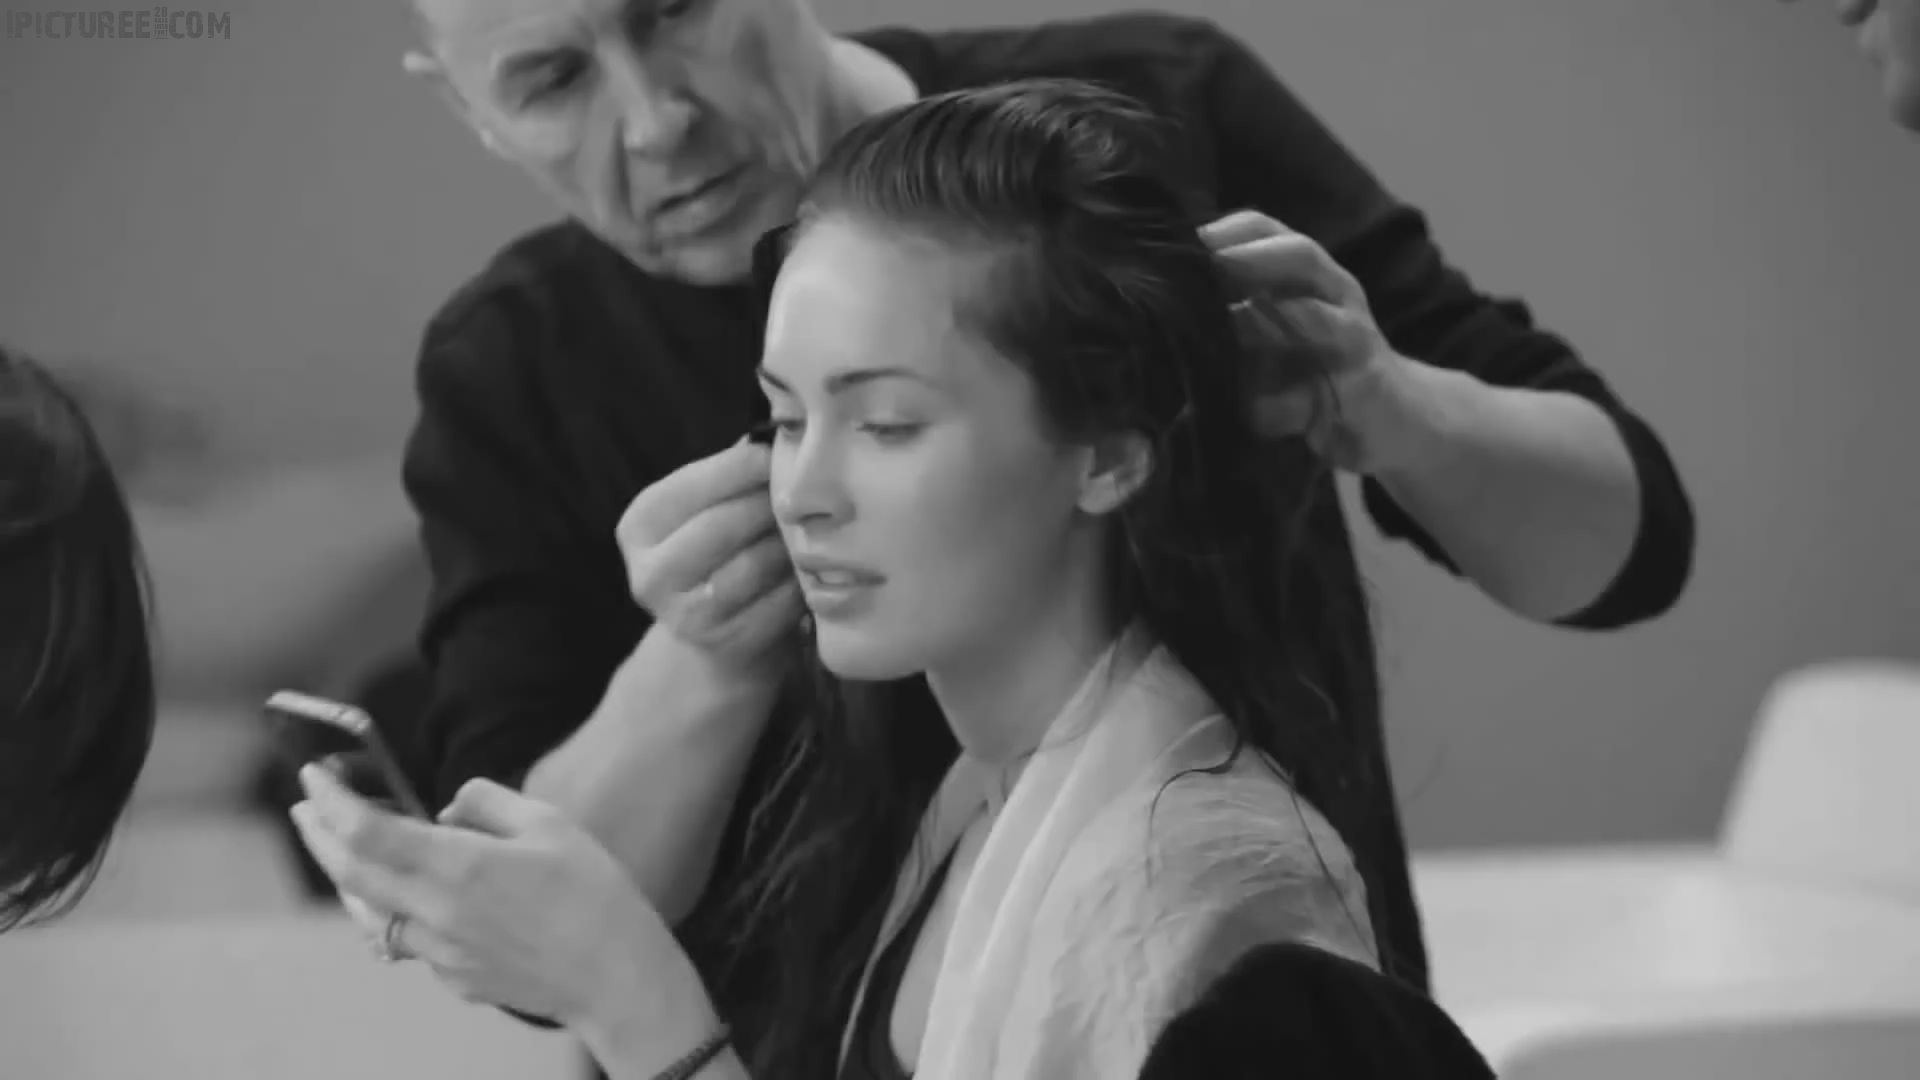 Megan Fox Getting ready for Armani Photo Shoot